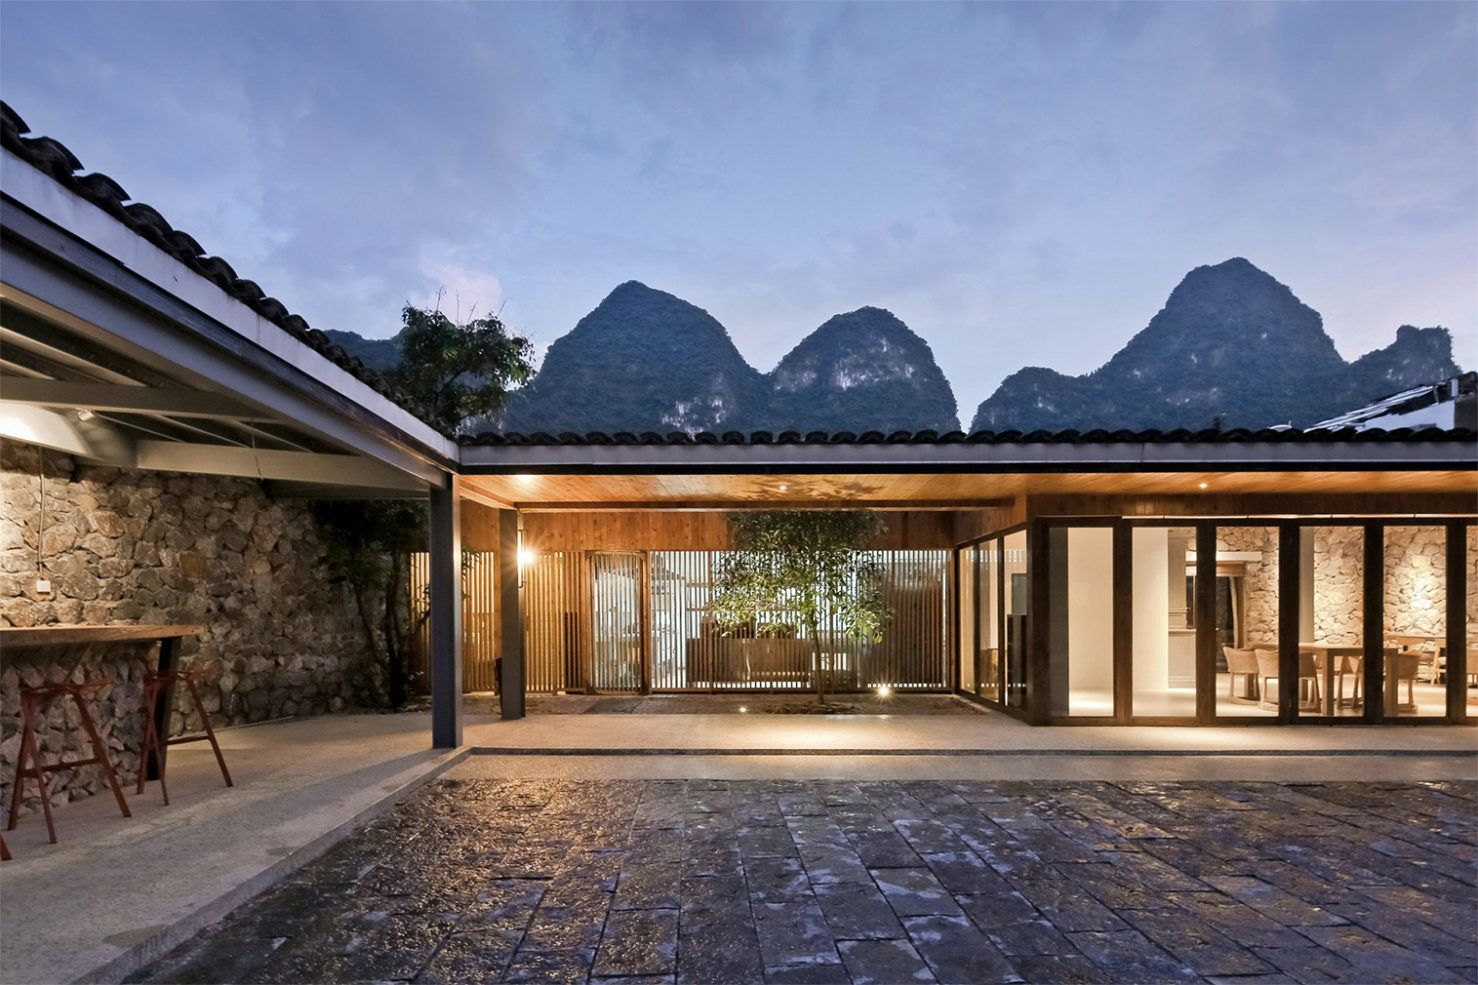 Pin by md on 建筑 in 2020 Architecture, Old farm houses